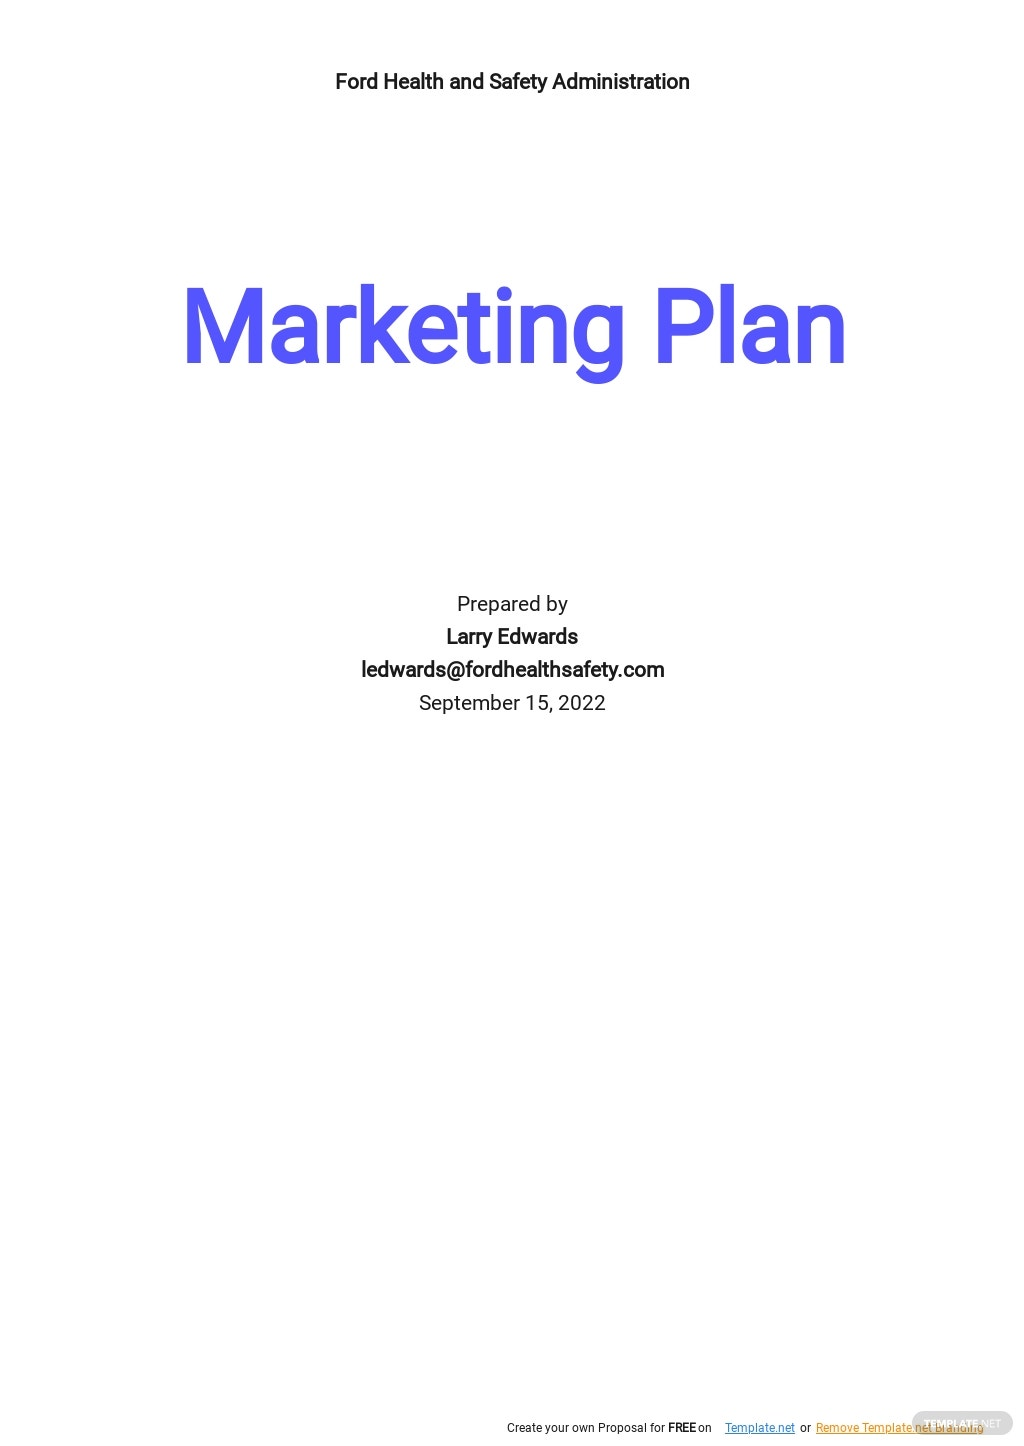 Health and Safety Marketing Plan Template.jpe